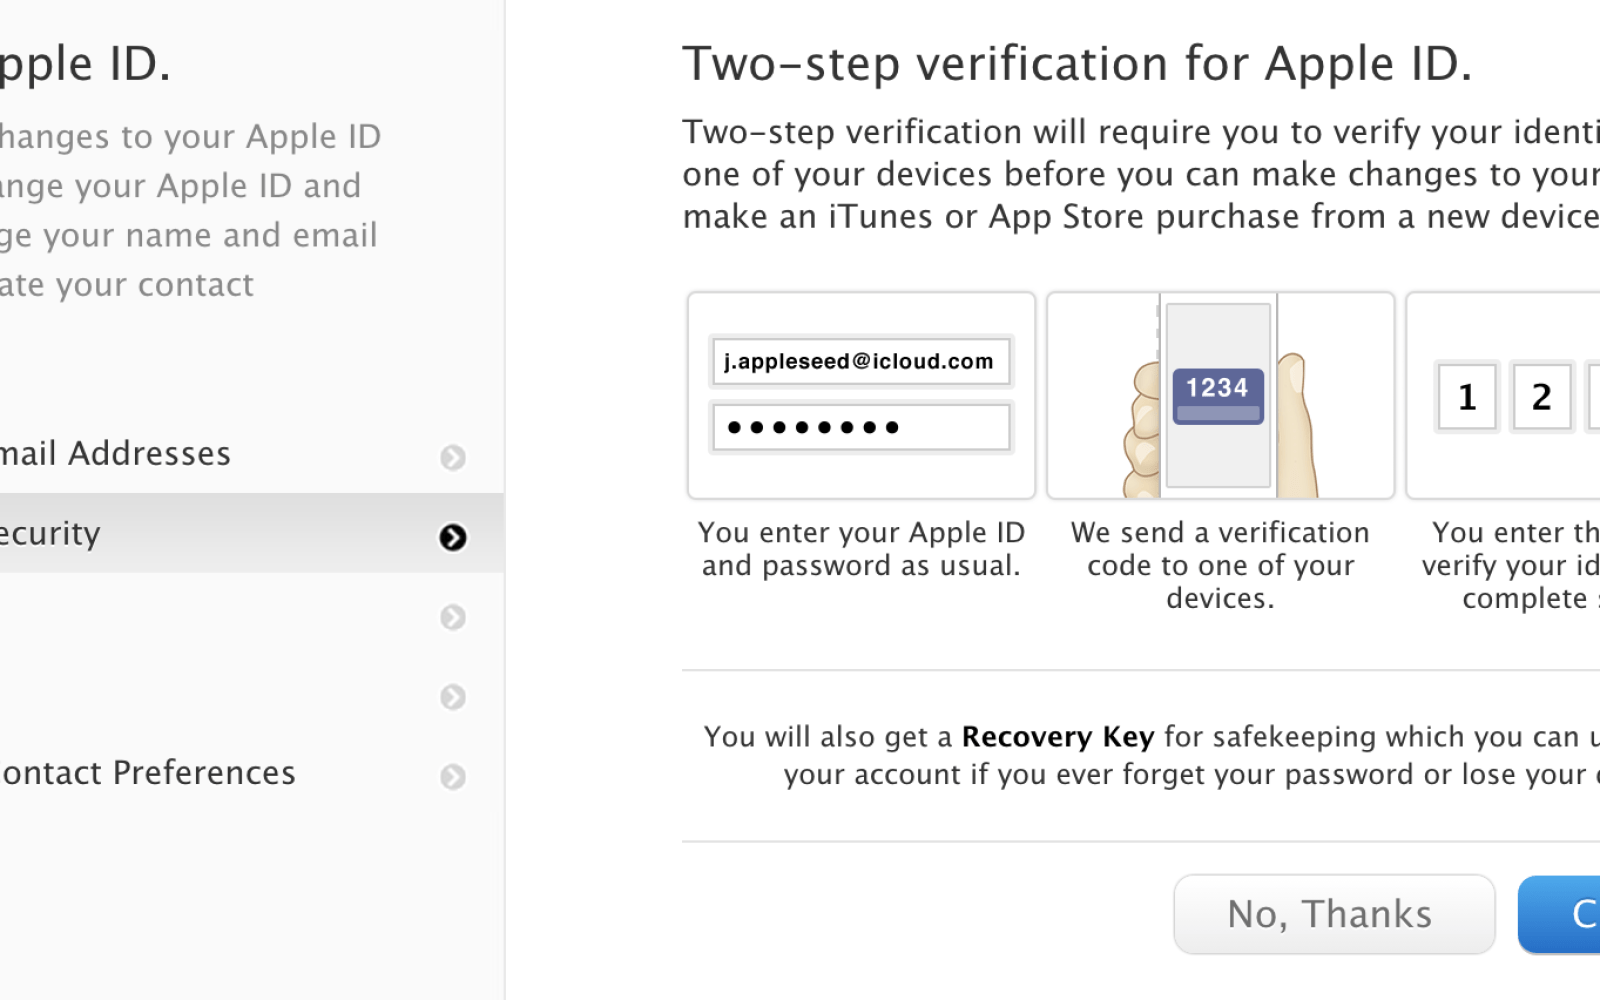 Apple's two-step verification for Apple IDs arrives in